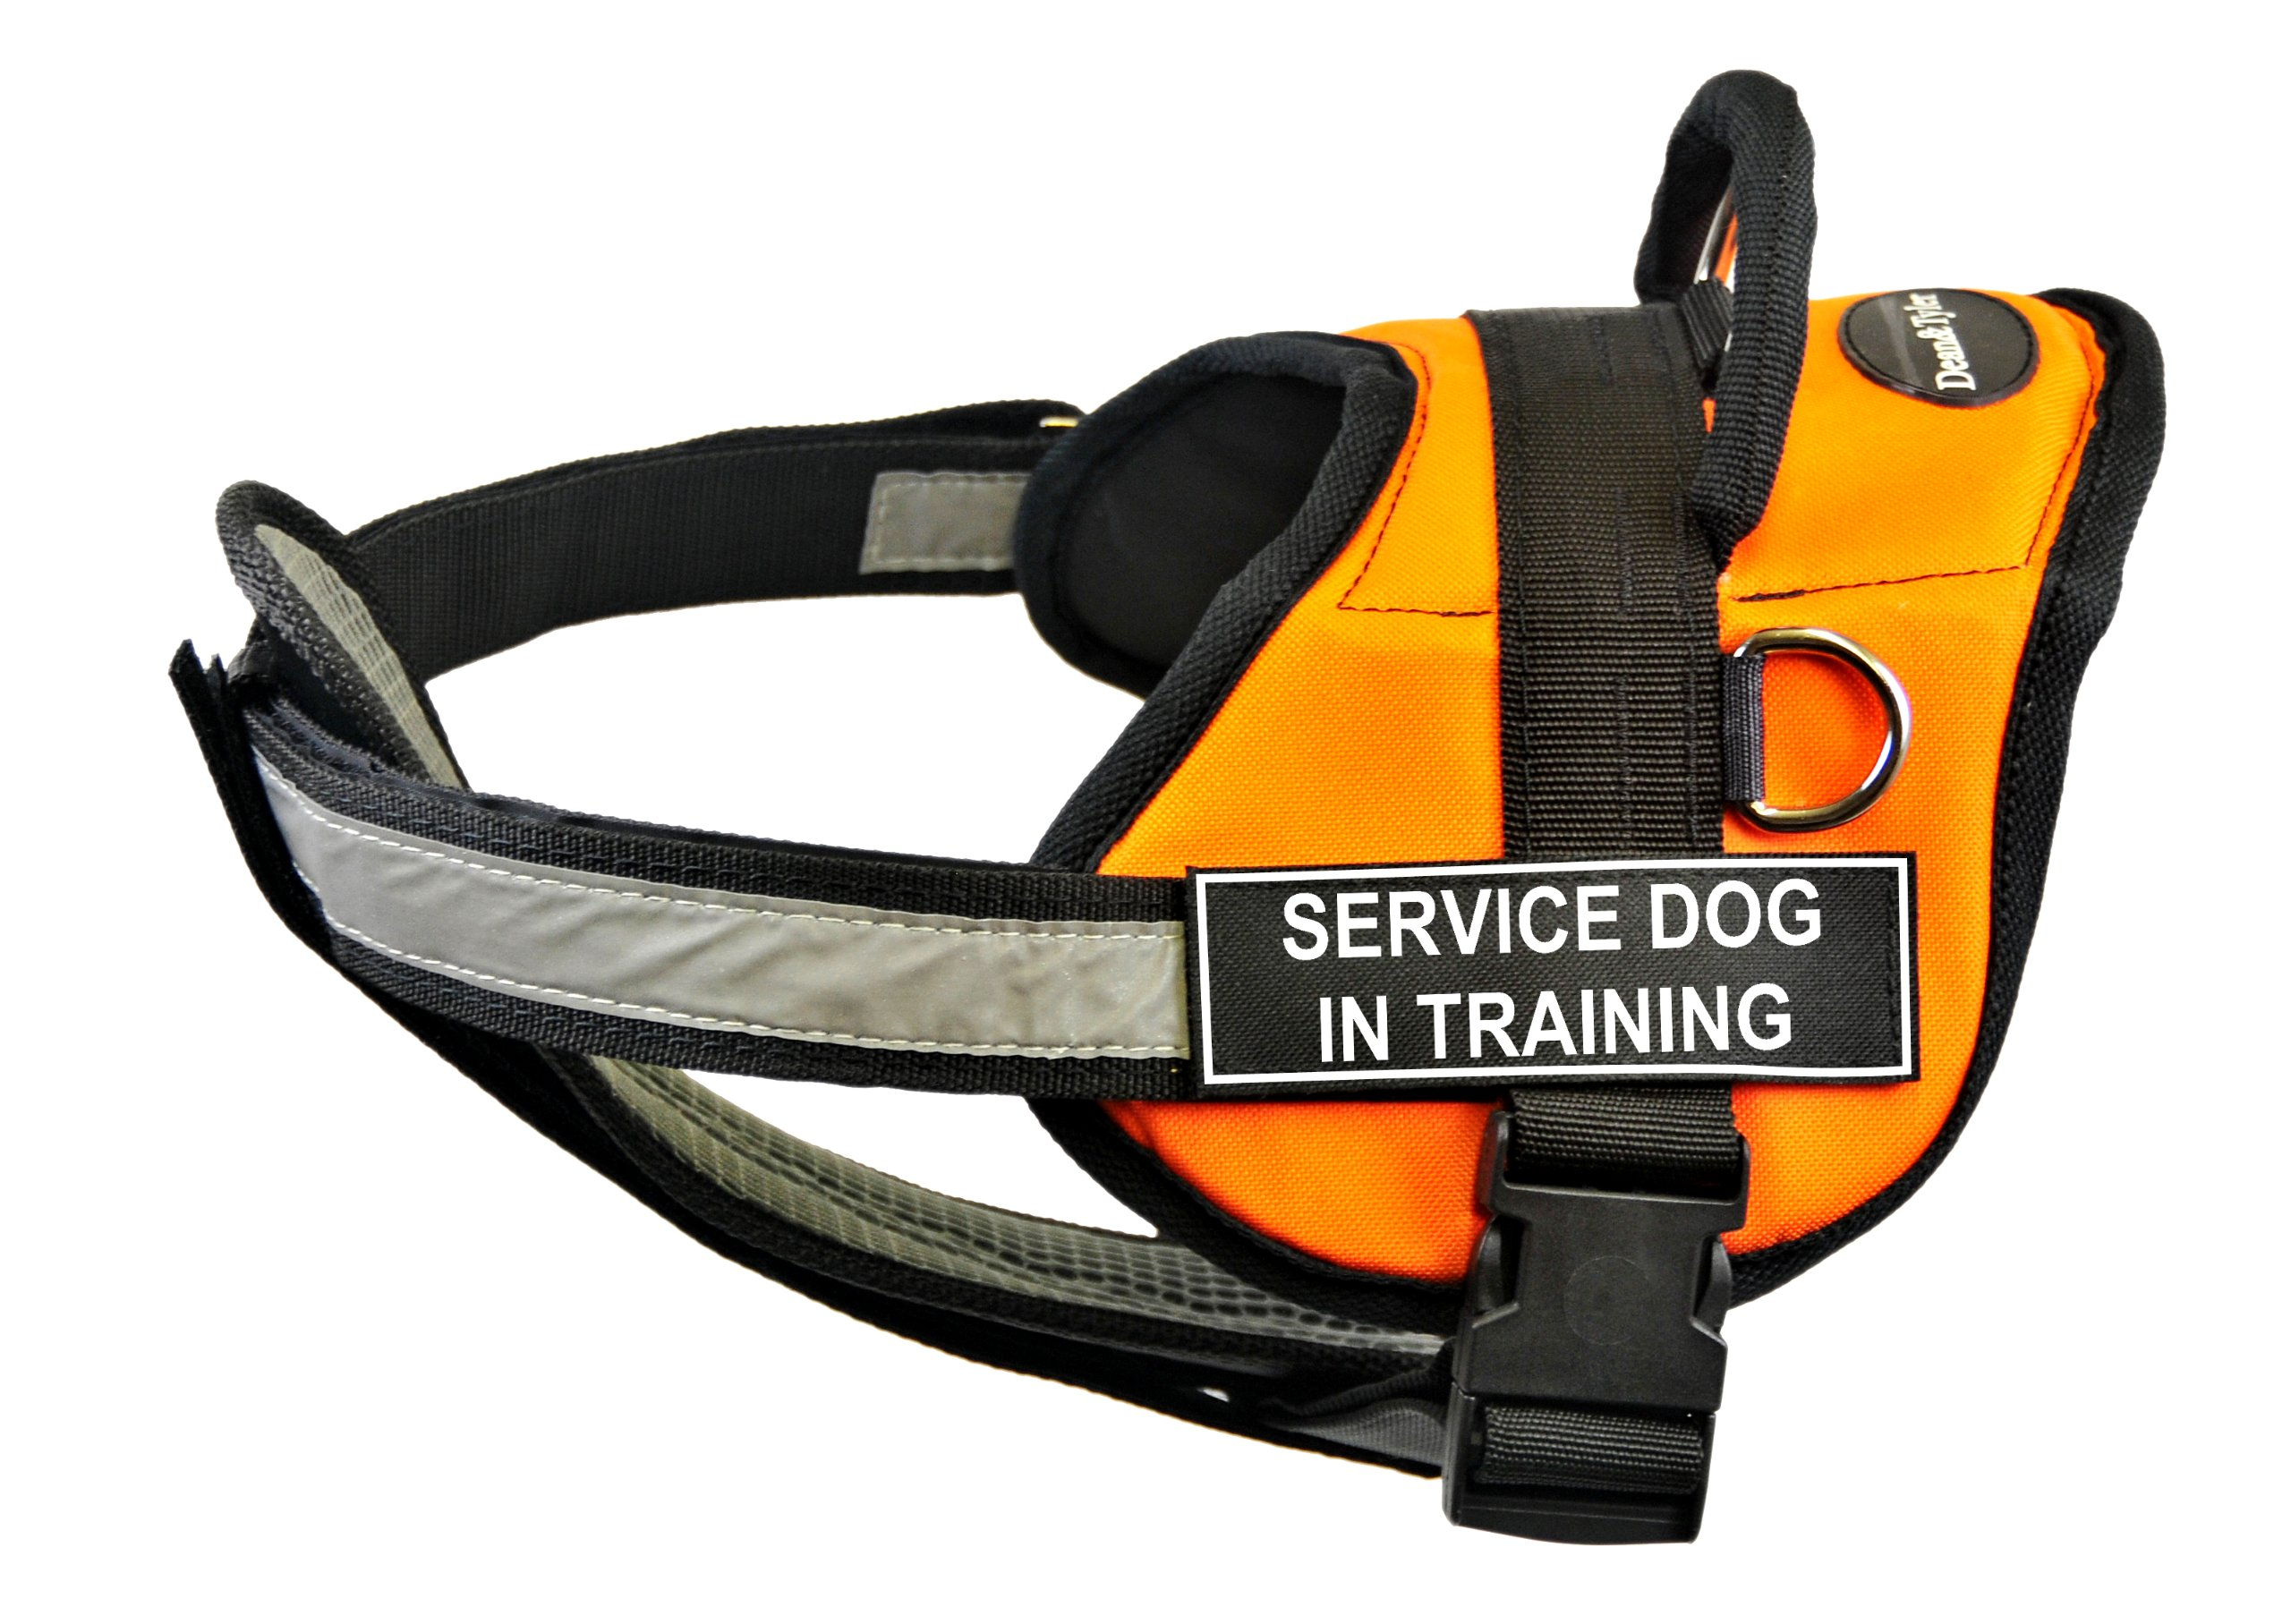 Dean & Tyler 21-Inch to 26-Inch Service Dog in Training Harness with Padded Reflective Chest Straps, X-Small, Orange/Black